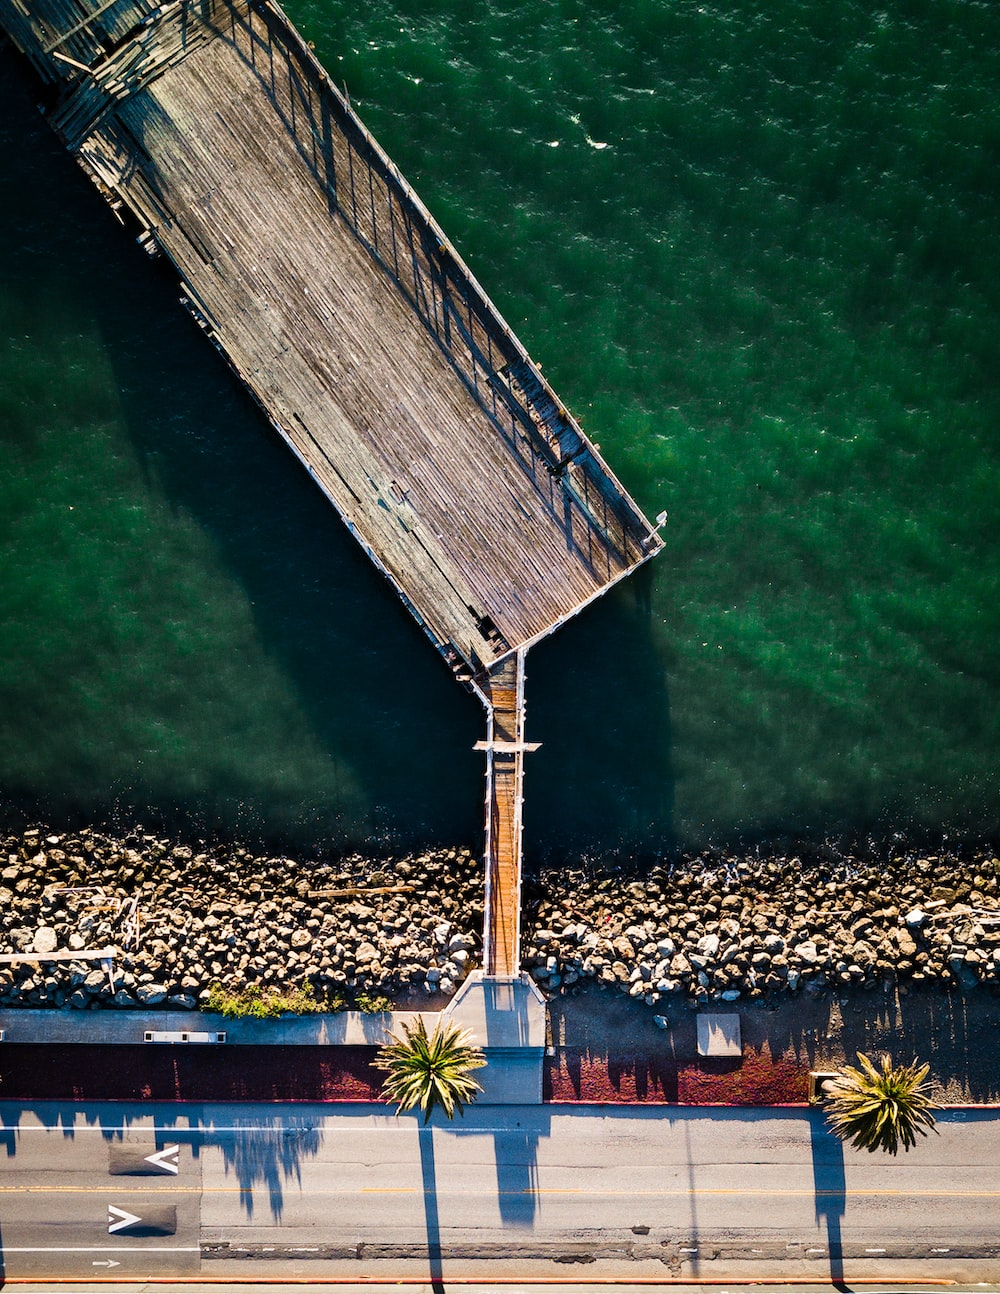 roadway beside brown wooden dock in aerial photography